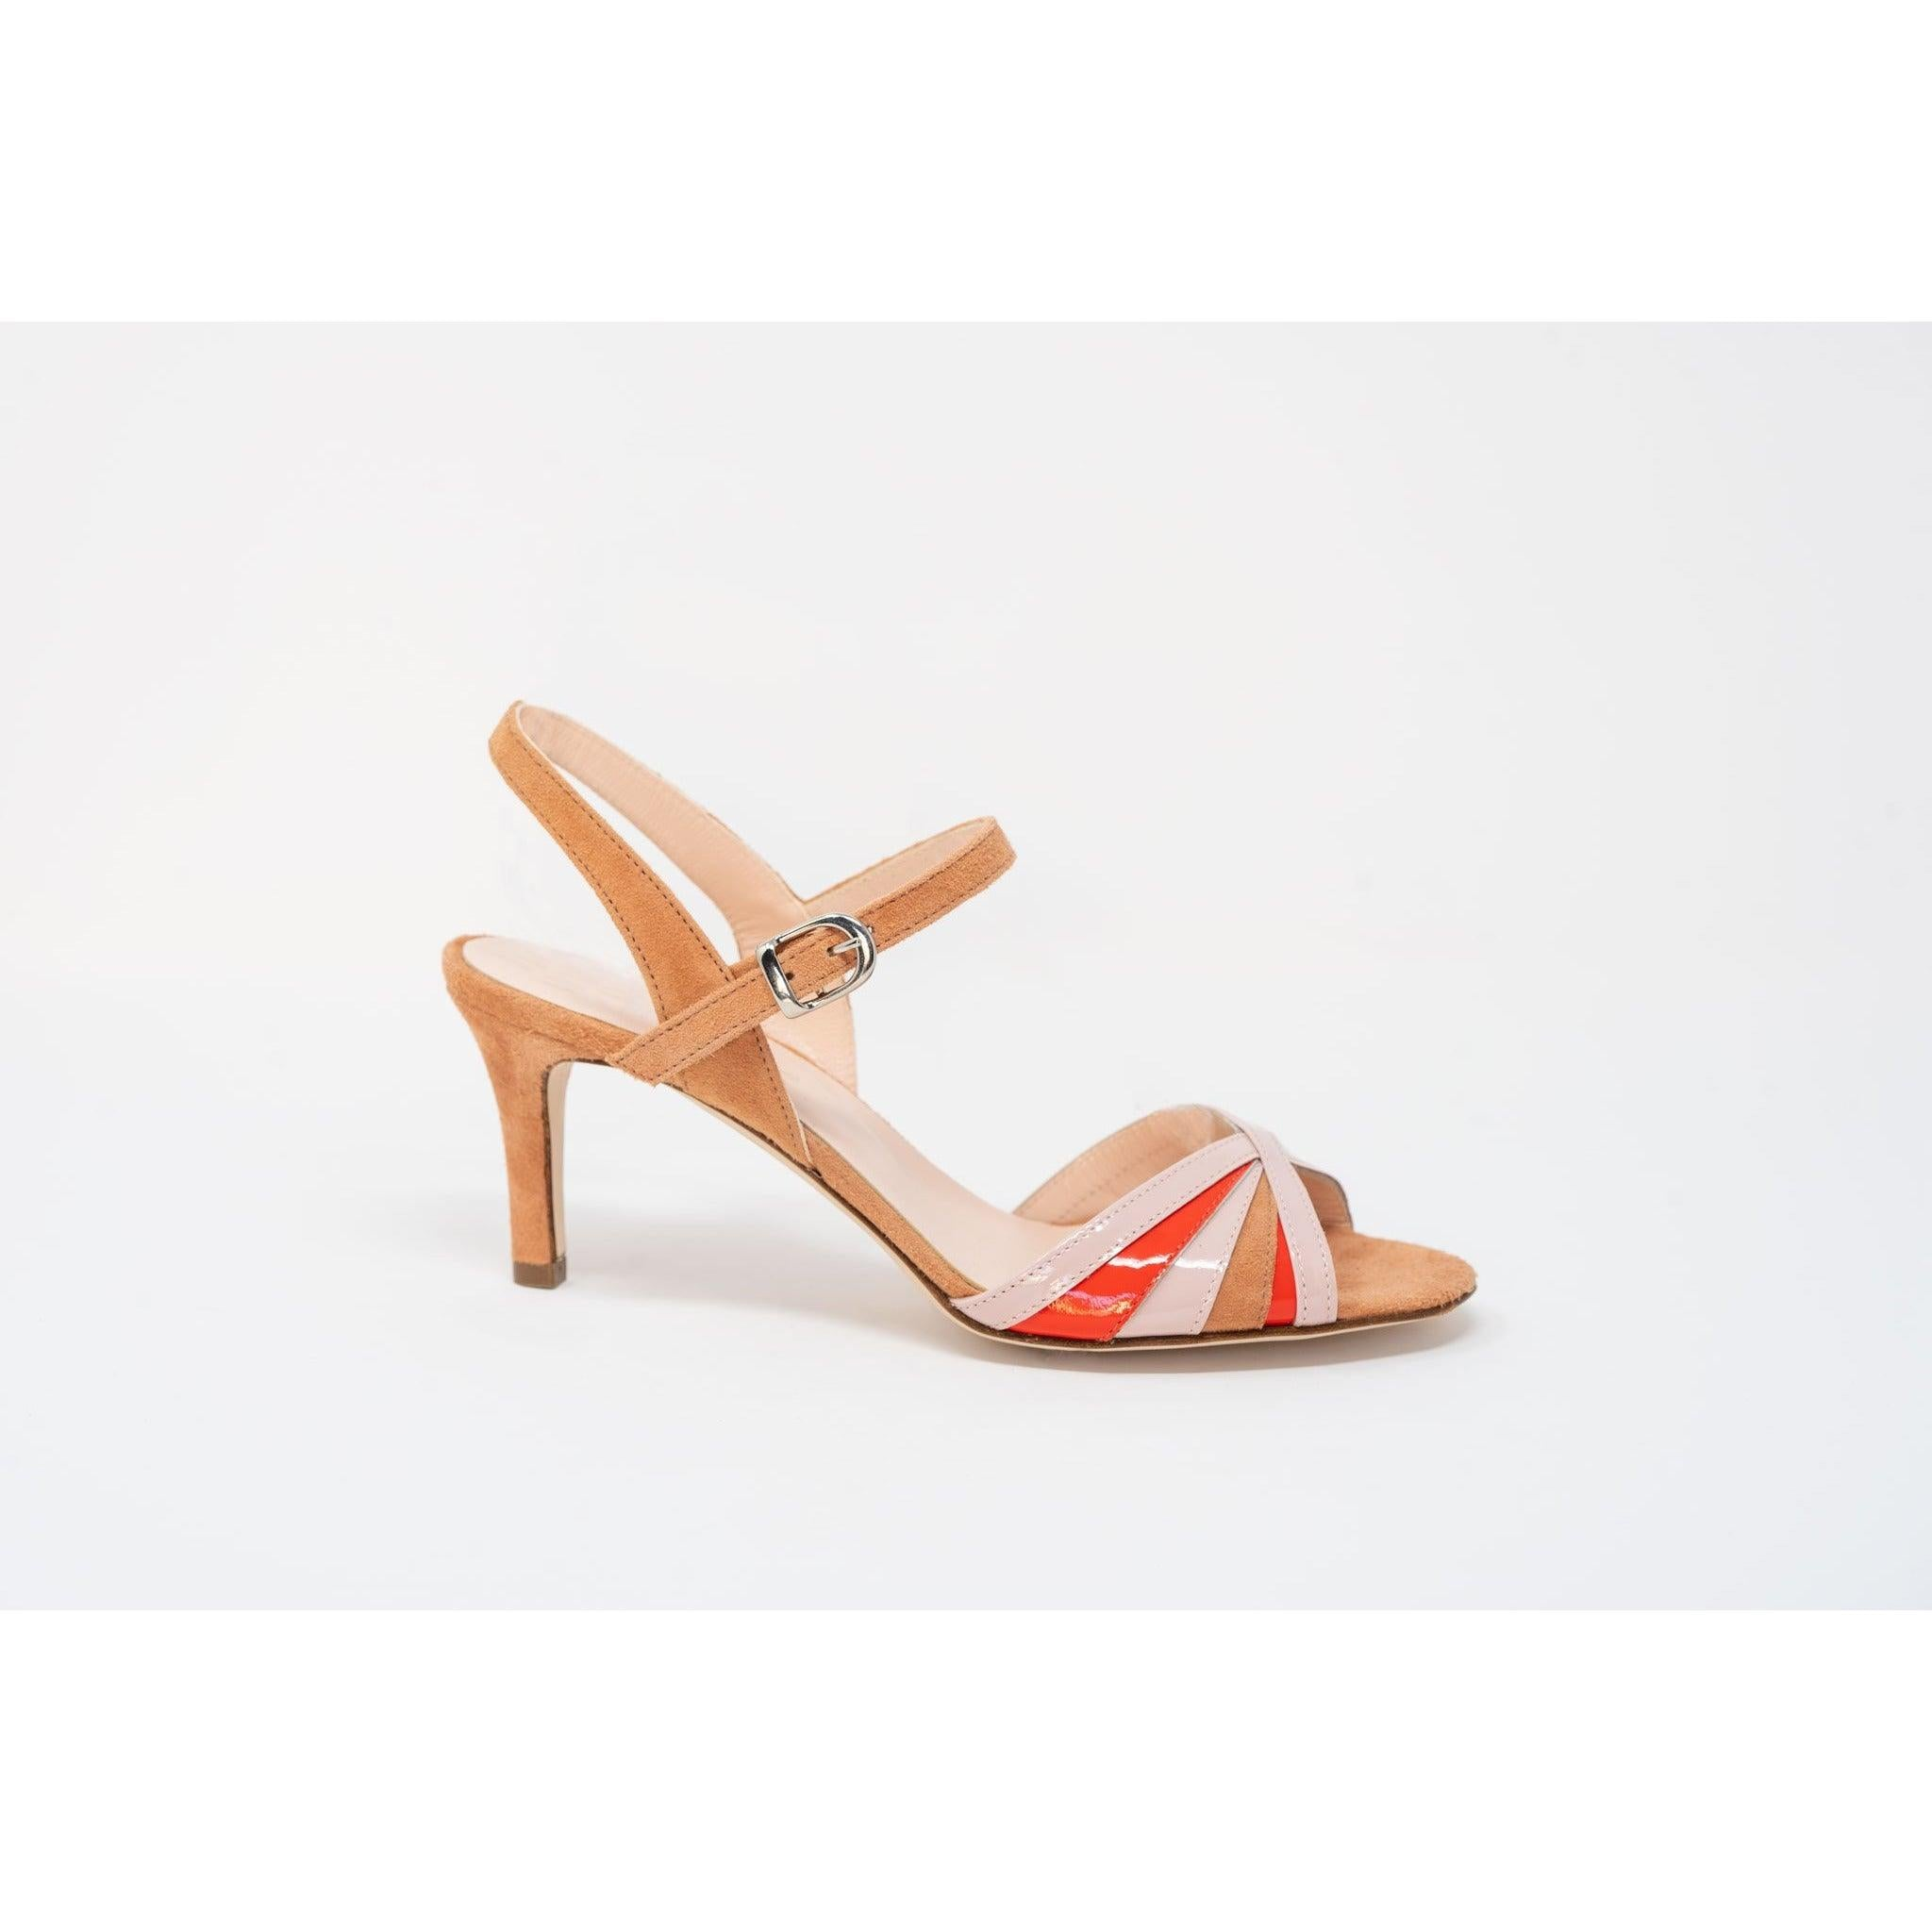 MIL5100 T65 Women Pumps - New Spring Summer 2020 Collection